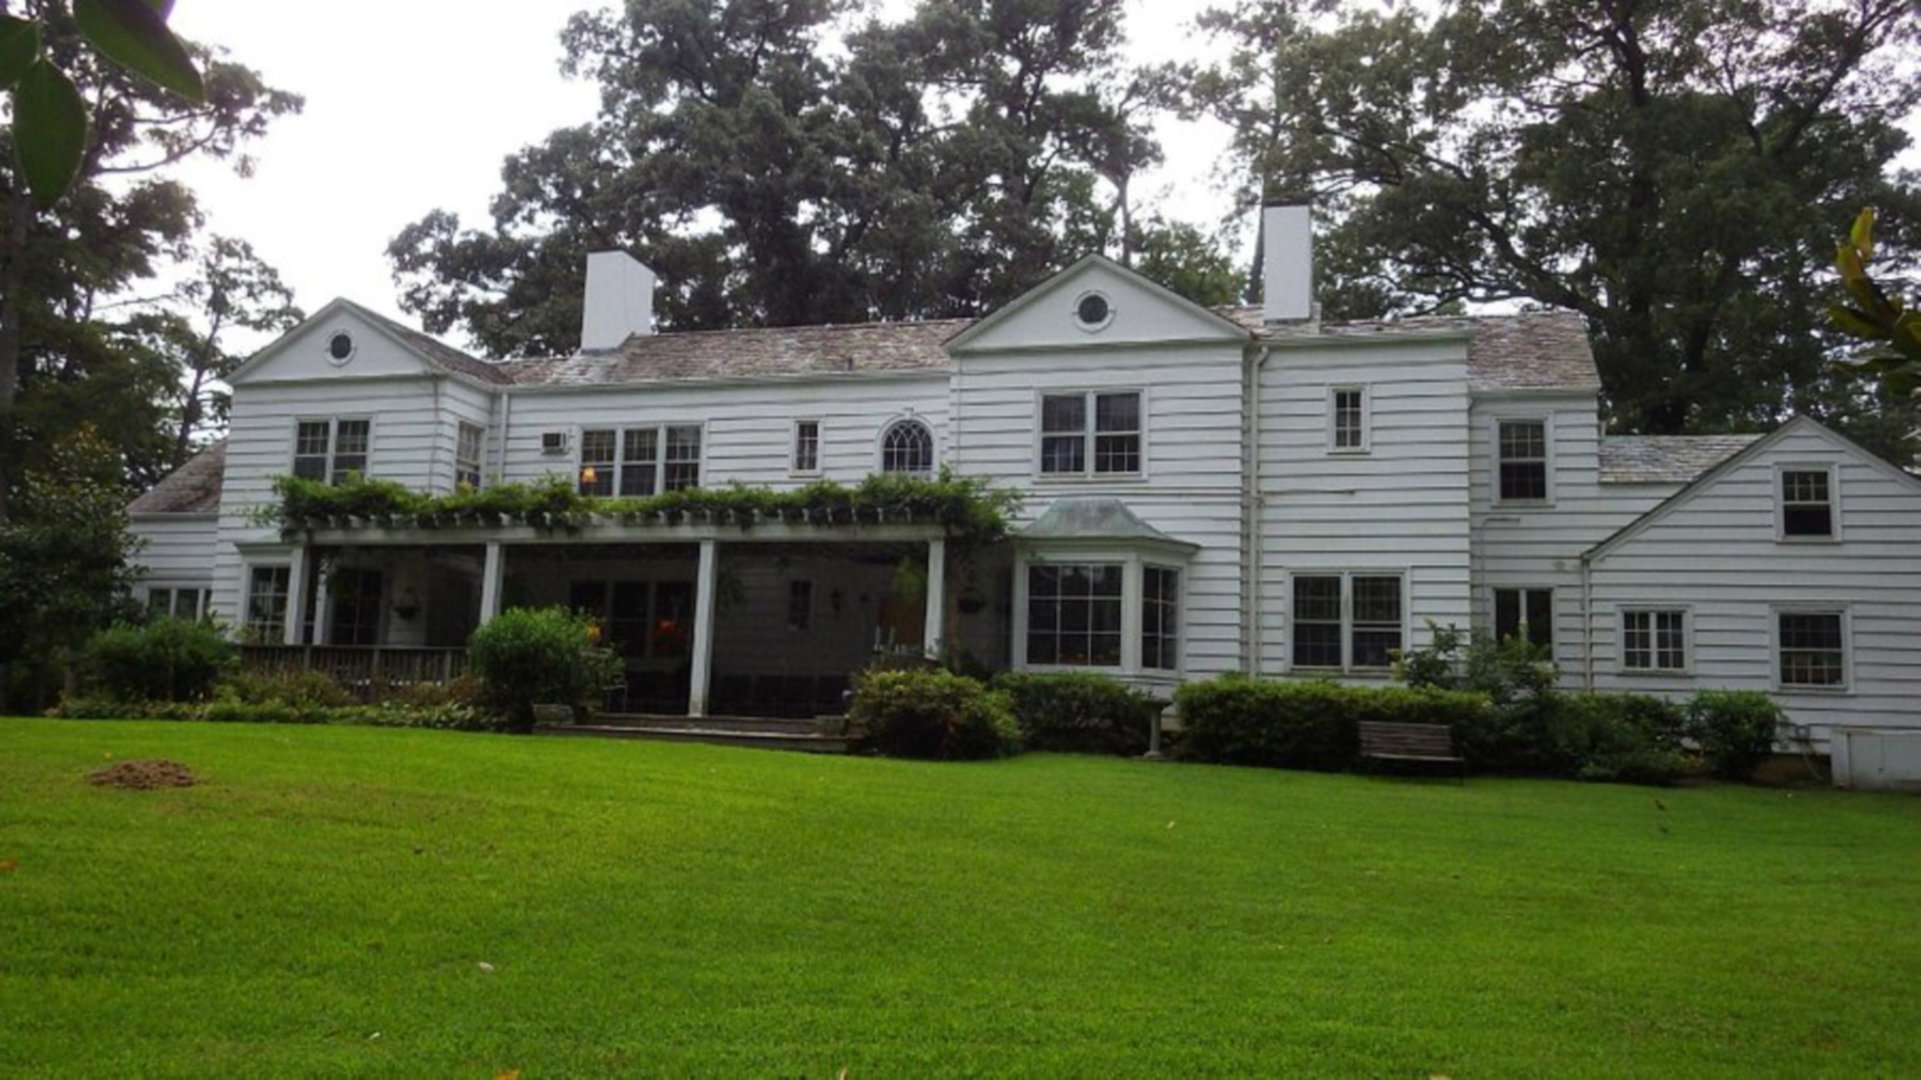 A large lawn in front of a house at The Pond House Inn.